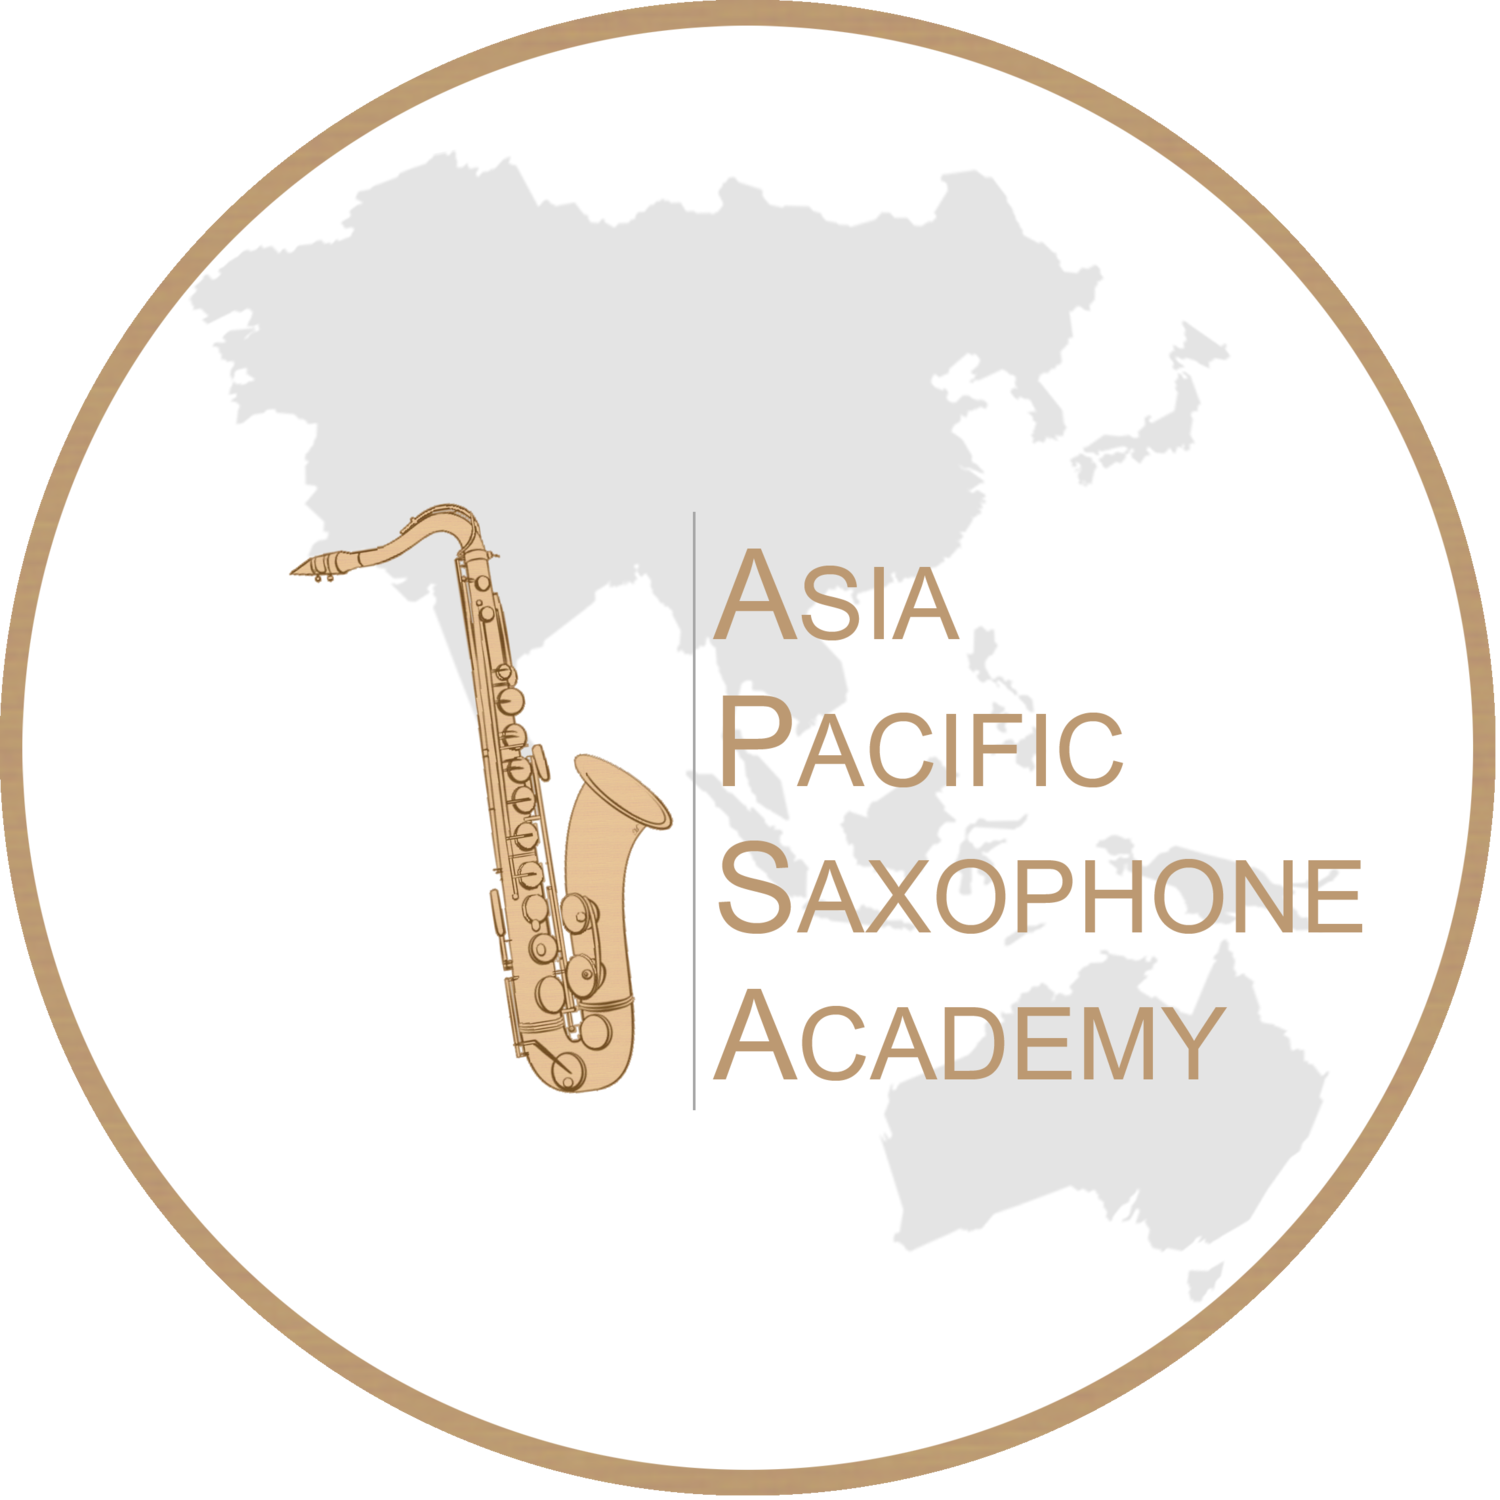 Asia Pacific Saxophone Academy